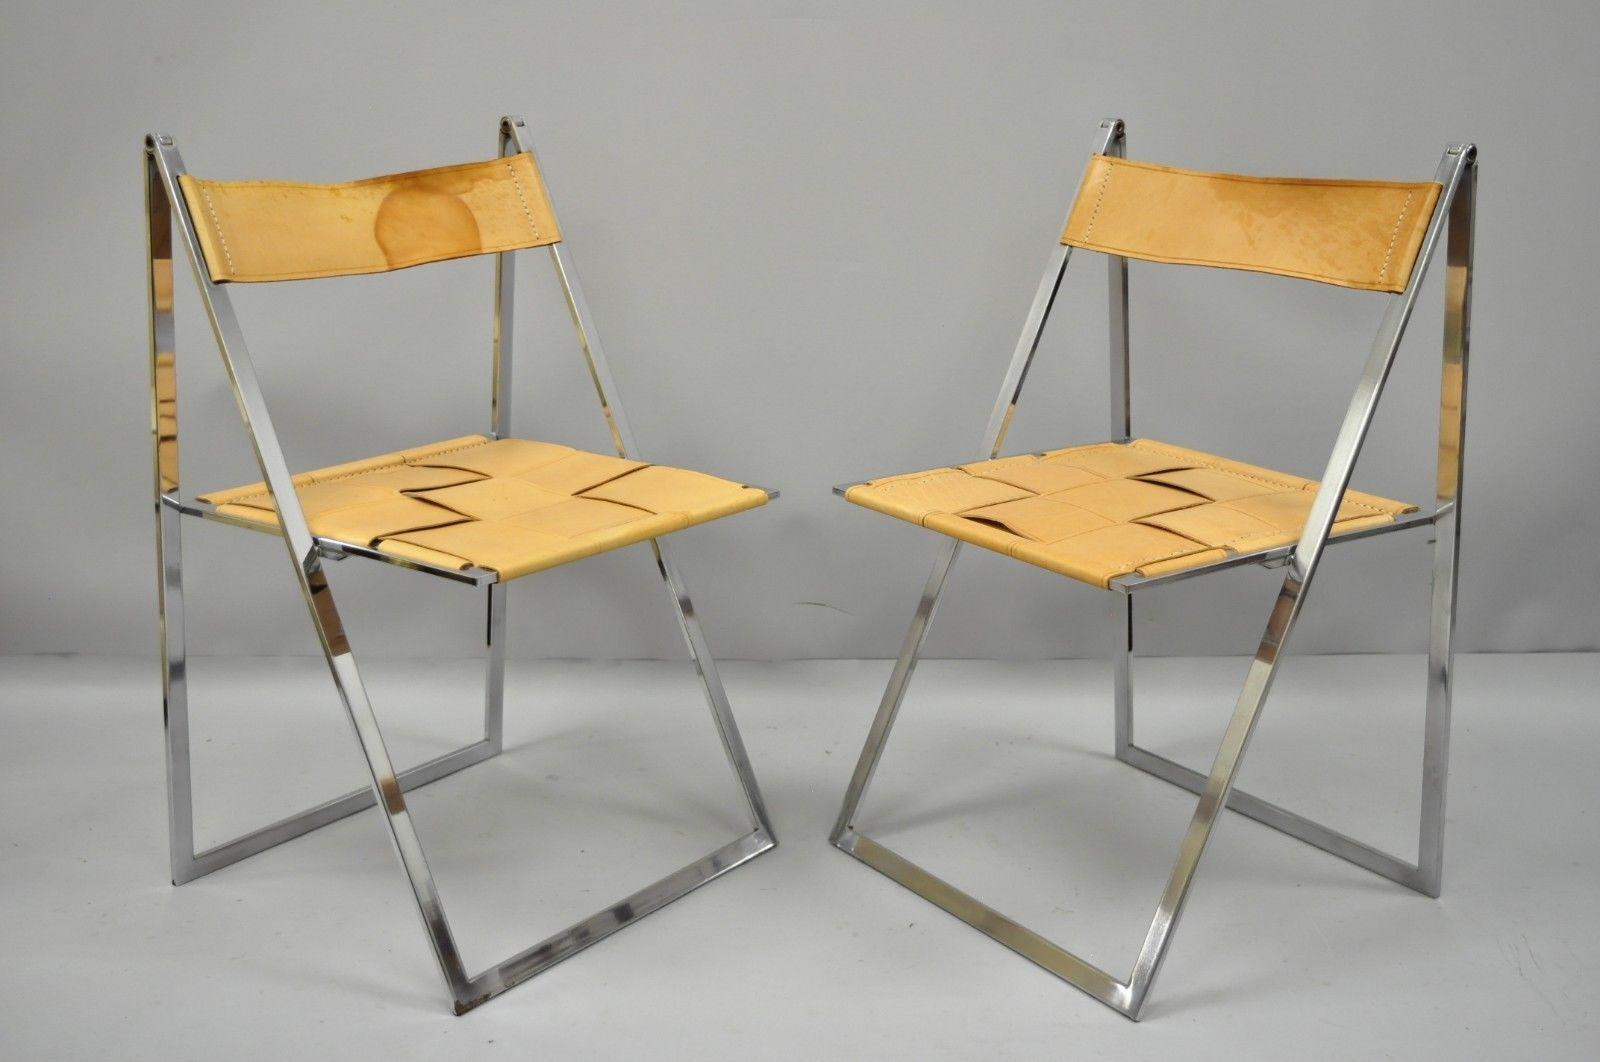 Collapsible Chair Pair Fontoni Geraci Elios Folding Chairs Italian Modern Chrome And Leather B